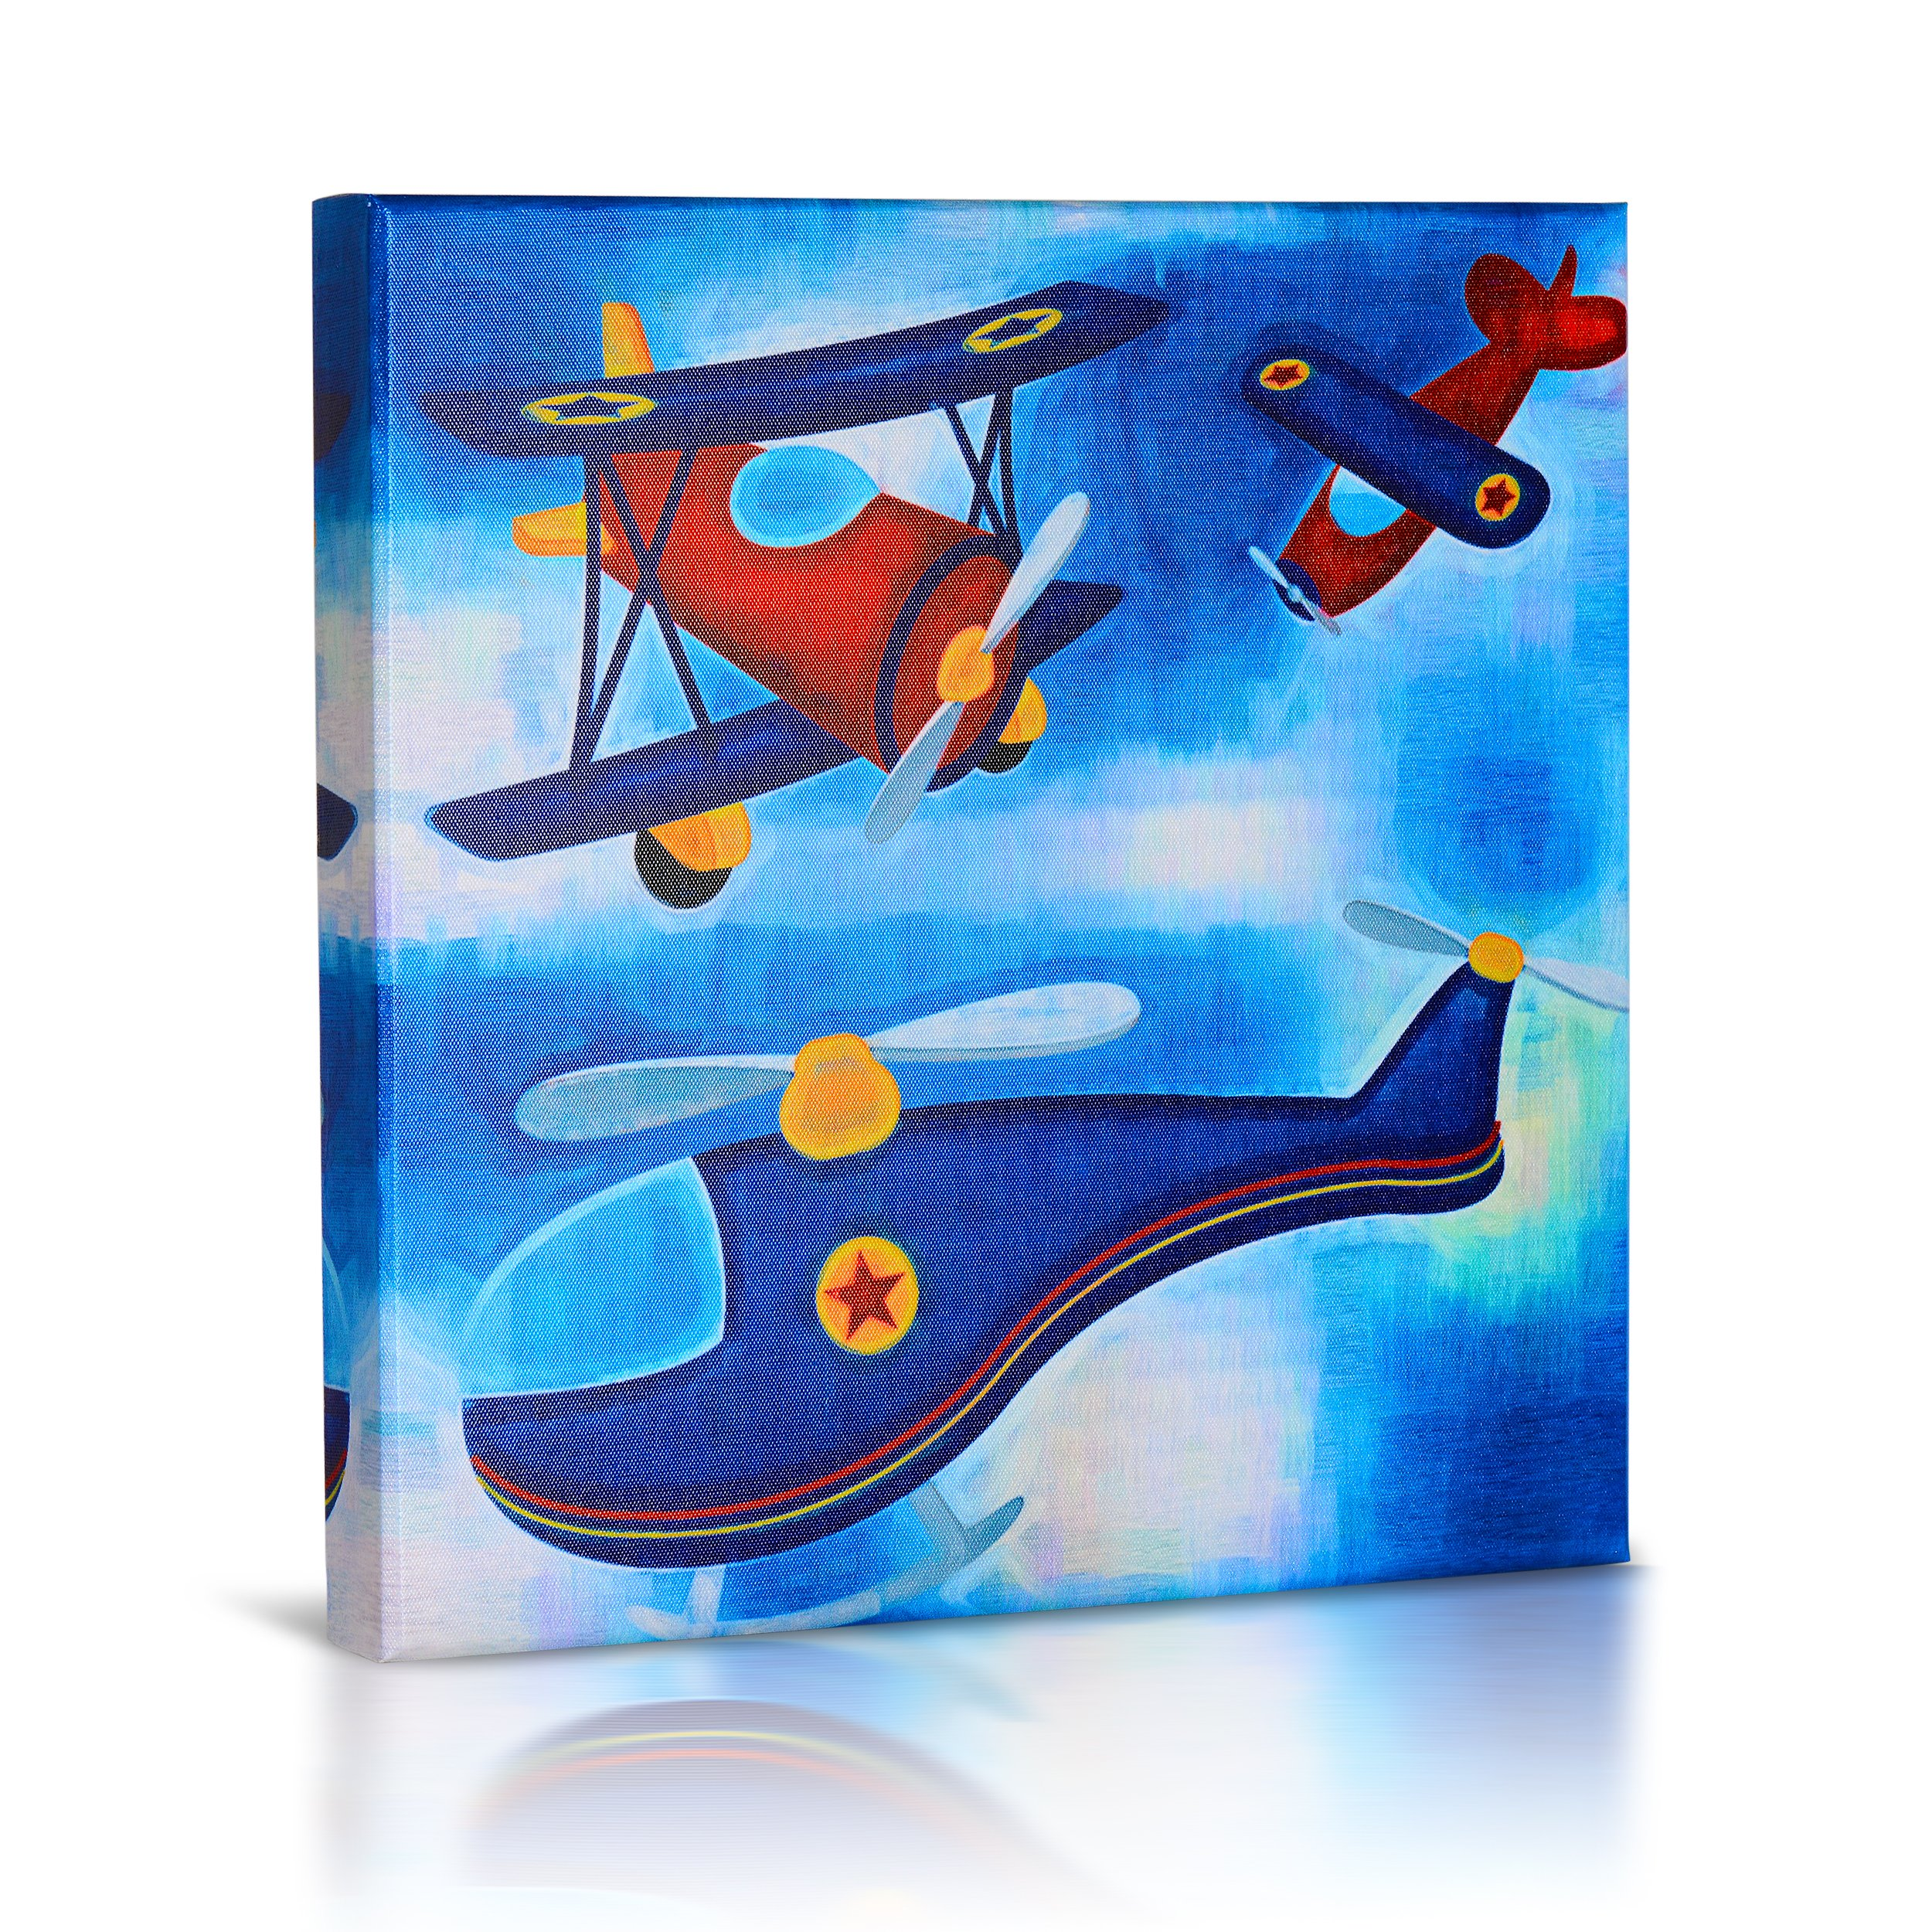 Green Frog Elegant Stretched and Framed Hand-Painted Modern Canvas Wall Art For Boys Room Indoor Wall Decorations (14 X 14, 015)